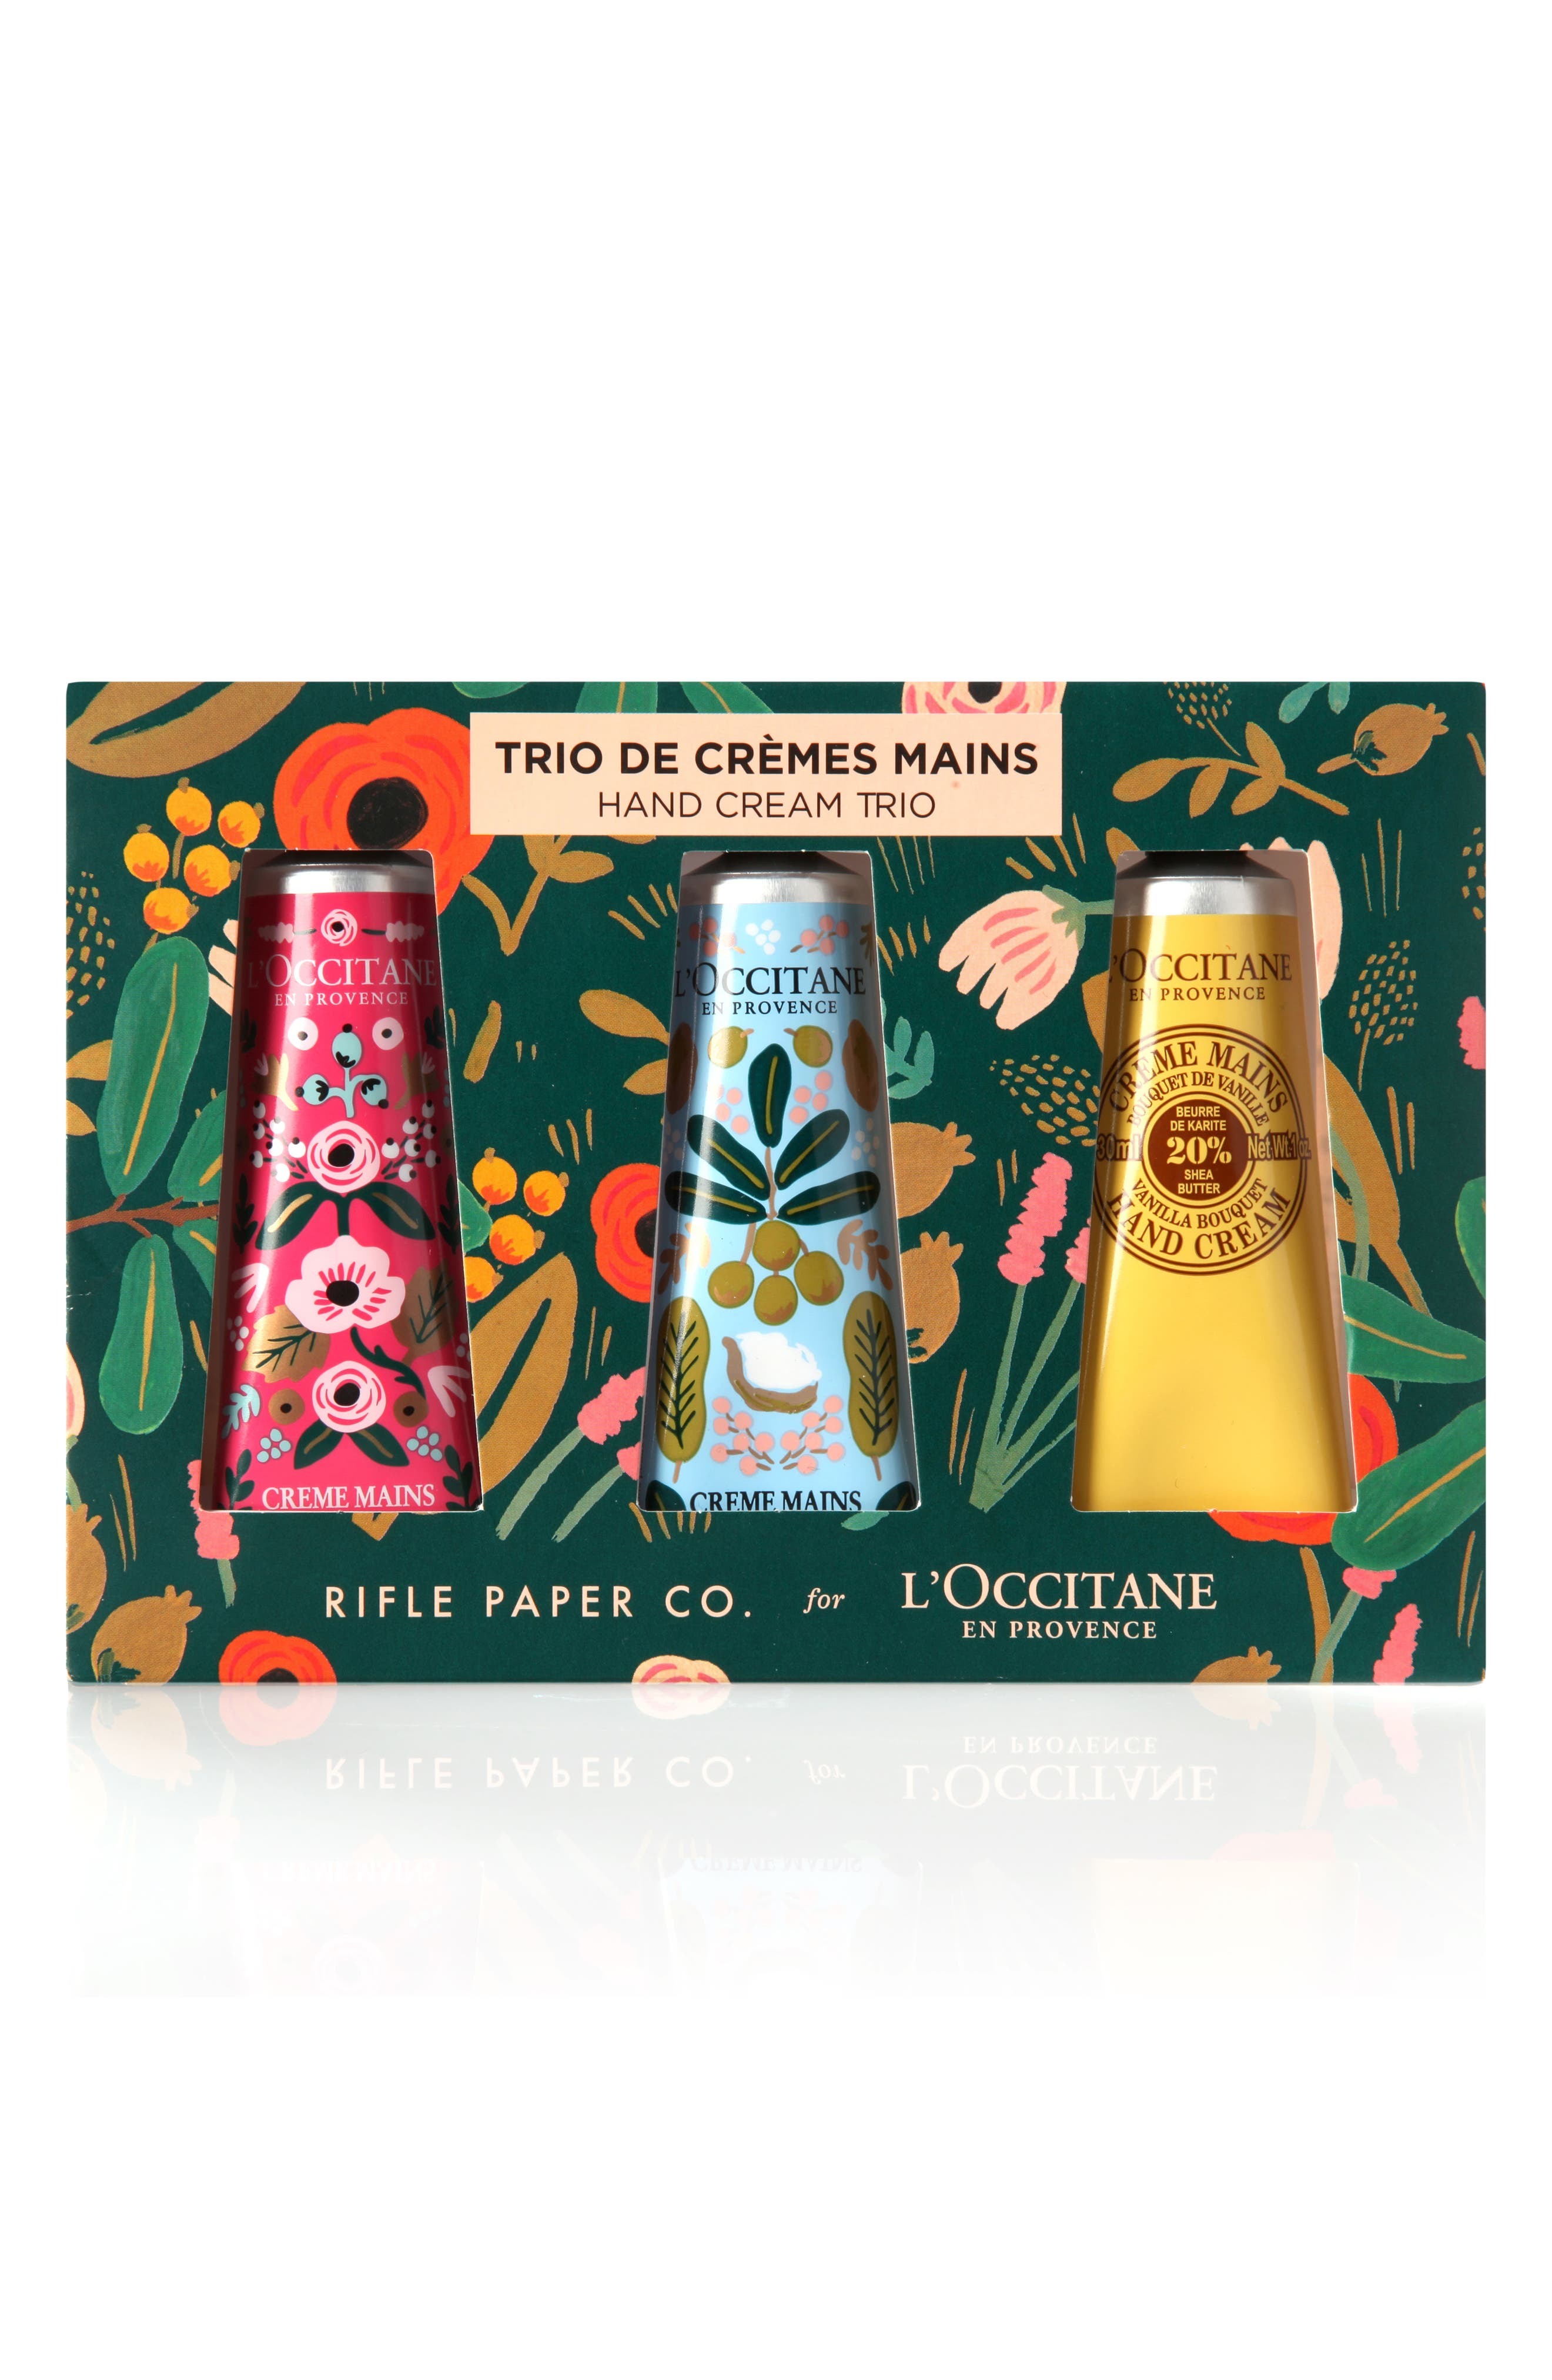 L'Occitane Rifle Paper Co. Shea Butter Hand Cream Trio ($36 Value)